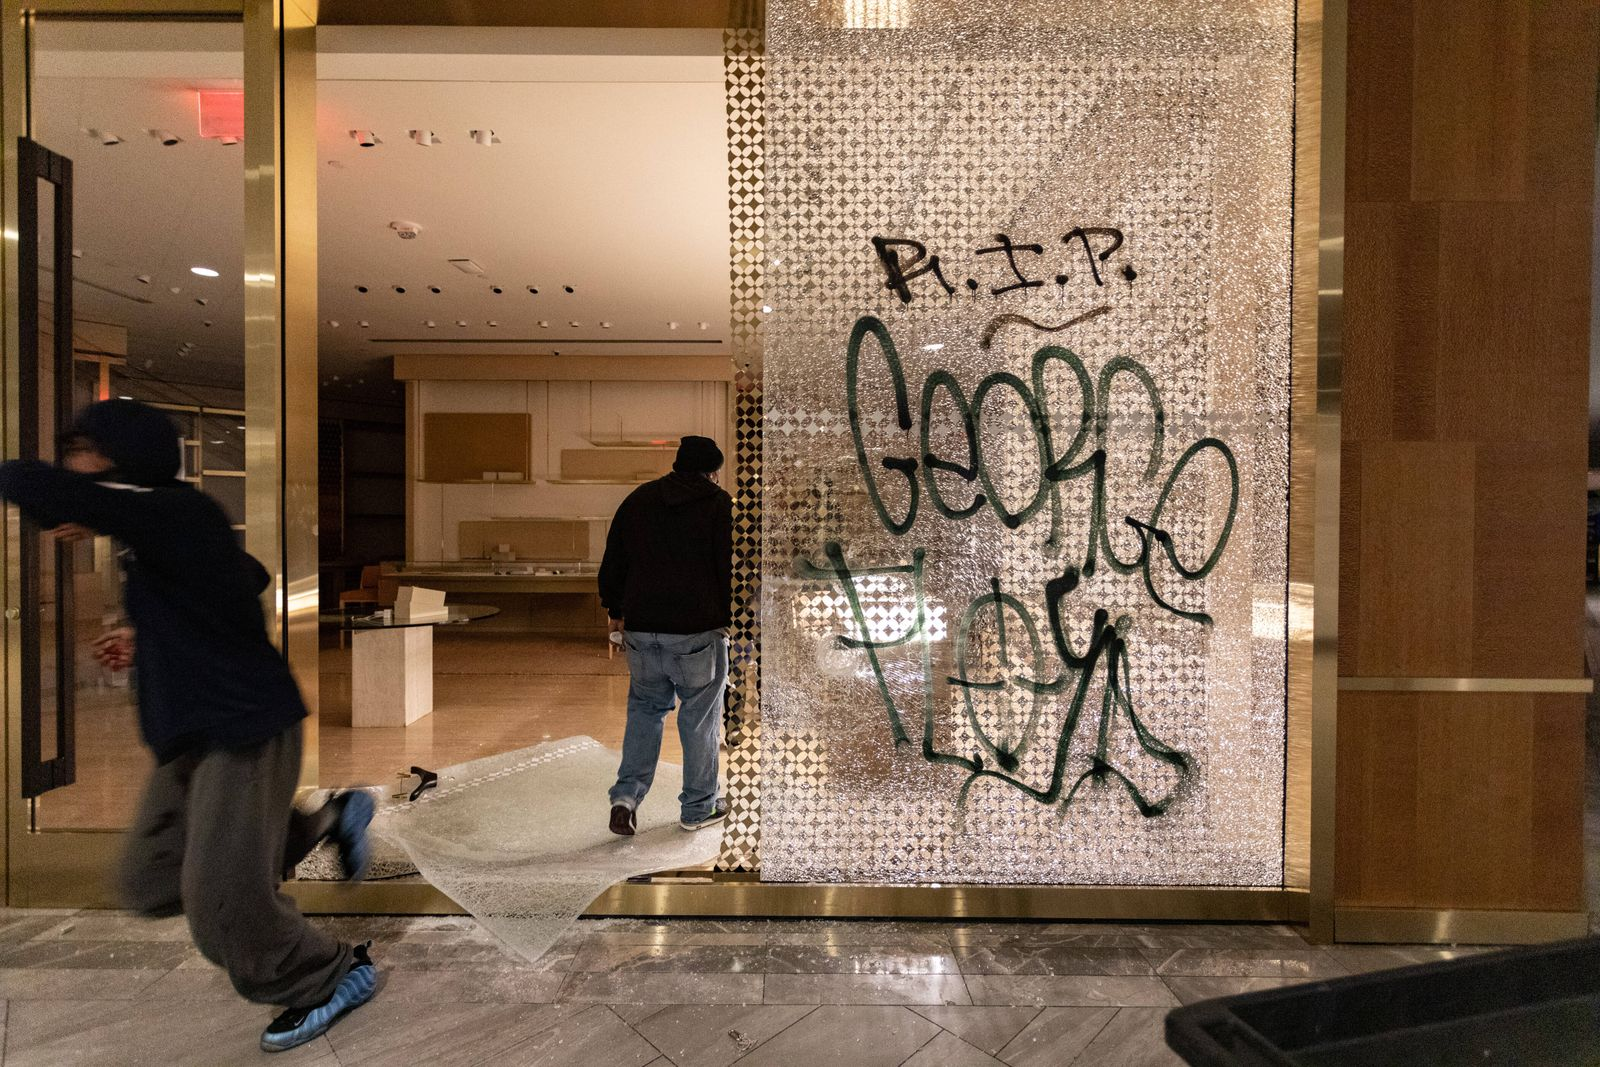 May 31, 2020, Boston, Massachusetts, USA: A looter inside Louis Vuitton inside Copley Place in Boston. Many stores in d